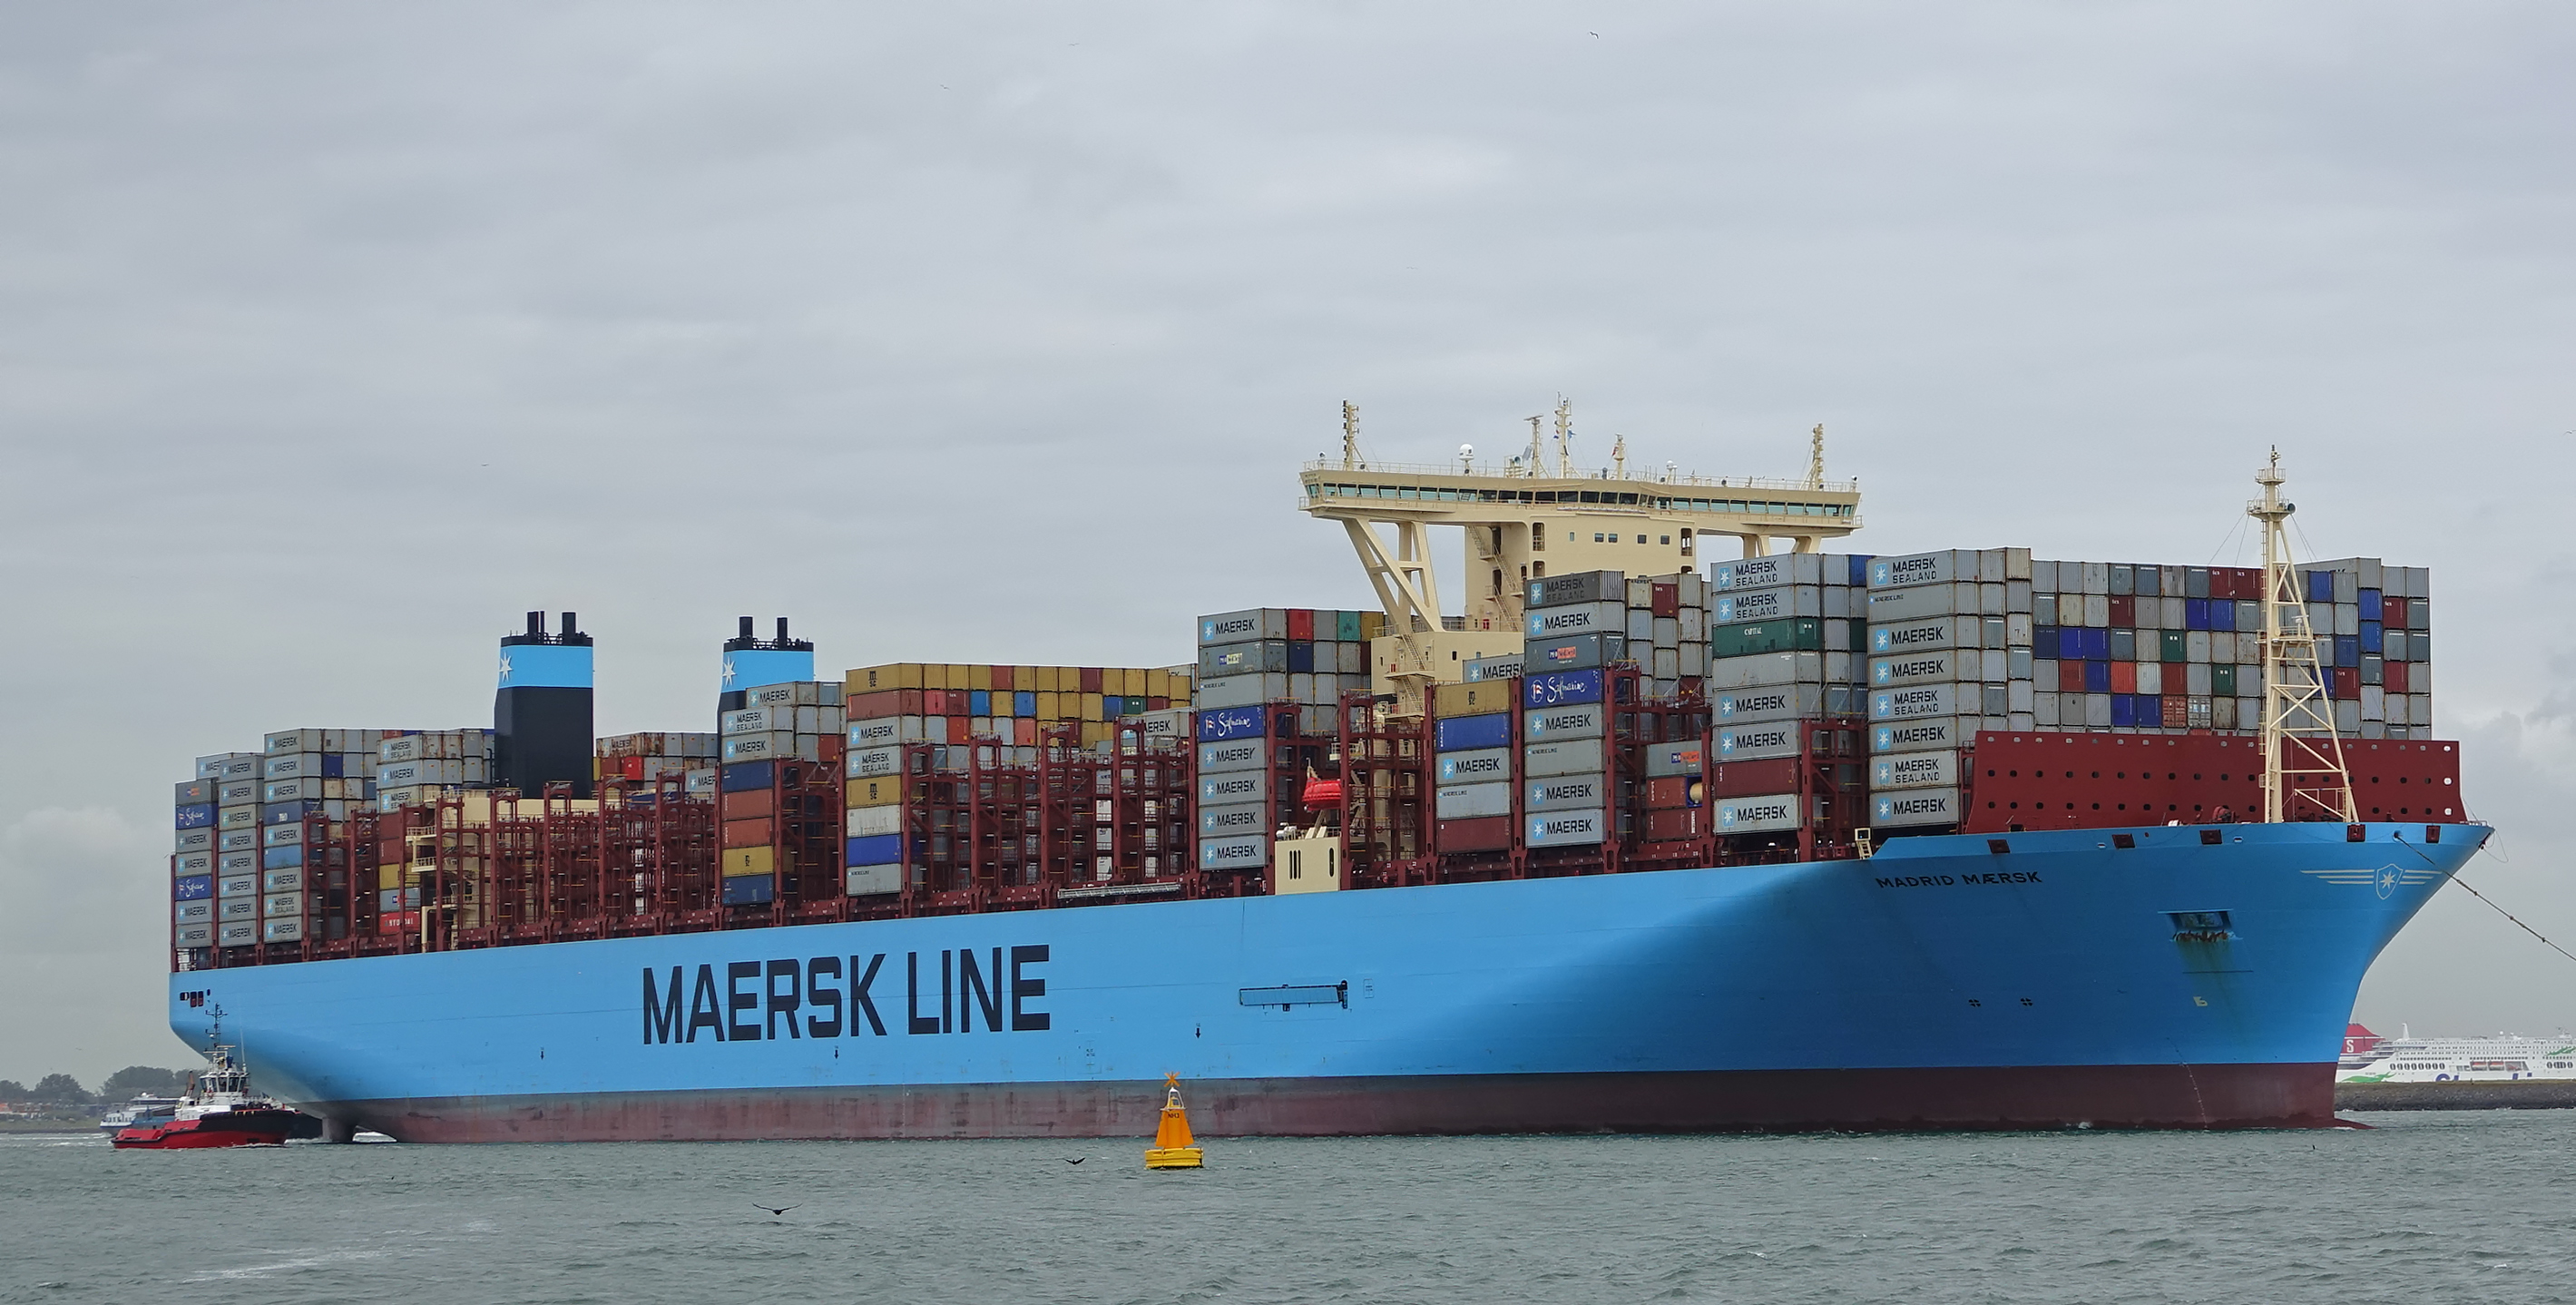 Madrid Maersk ship